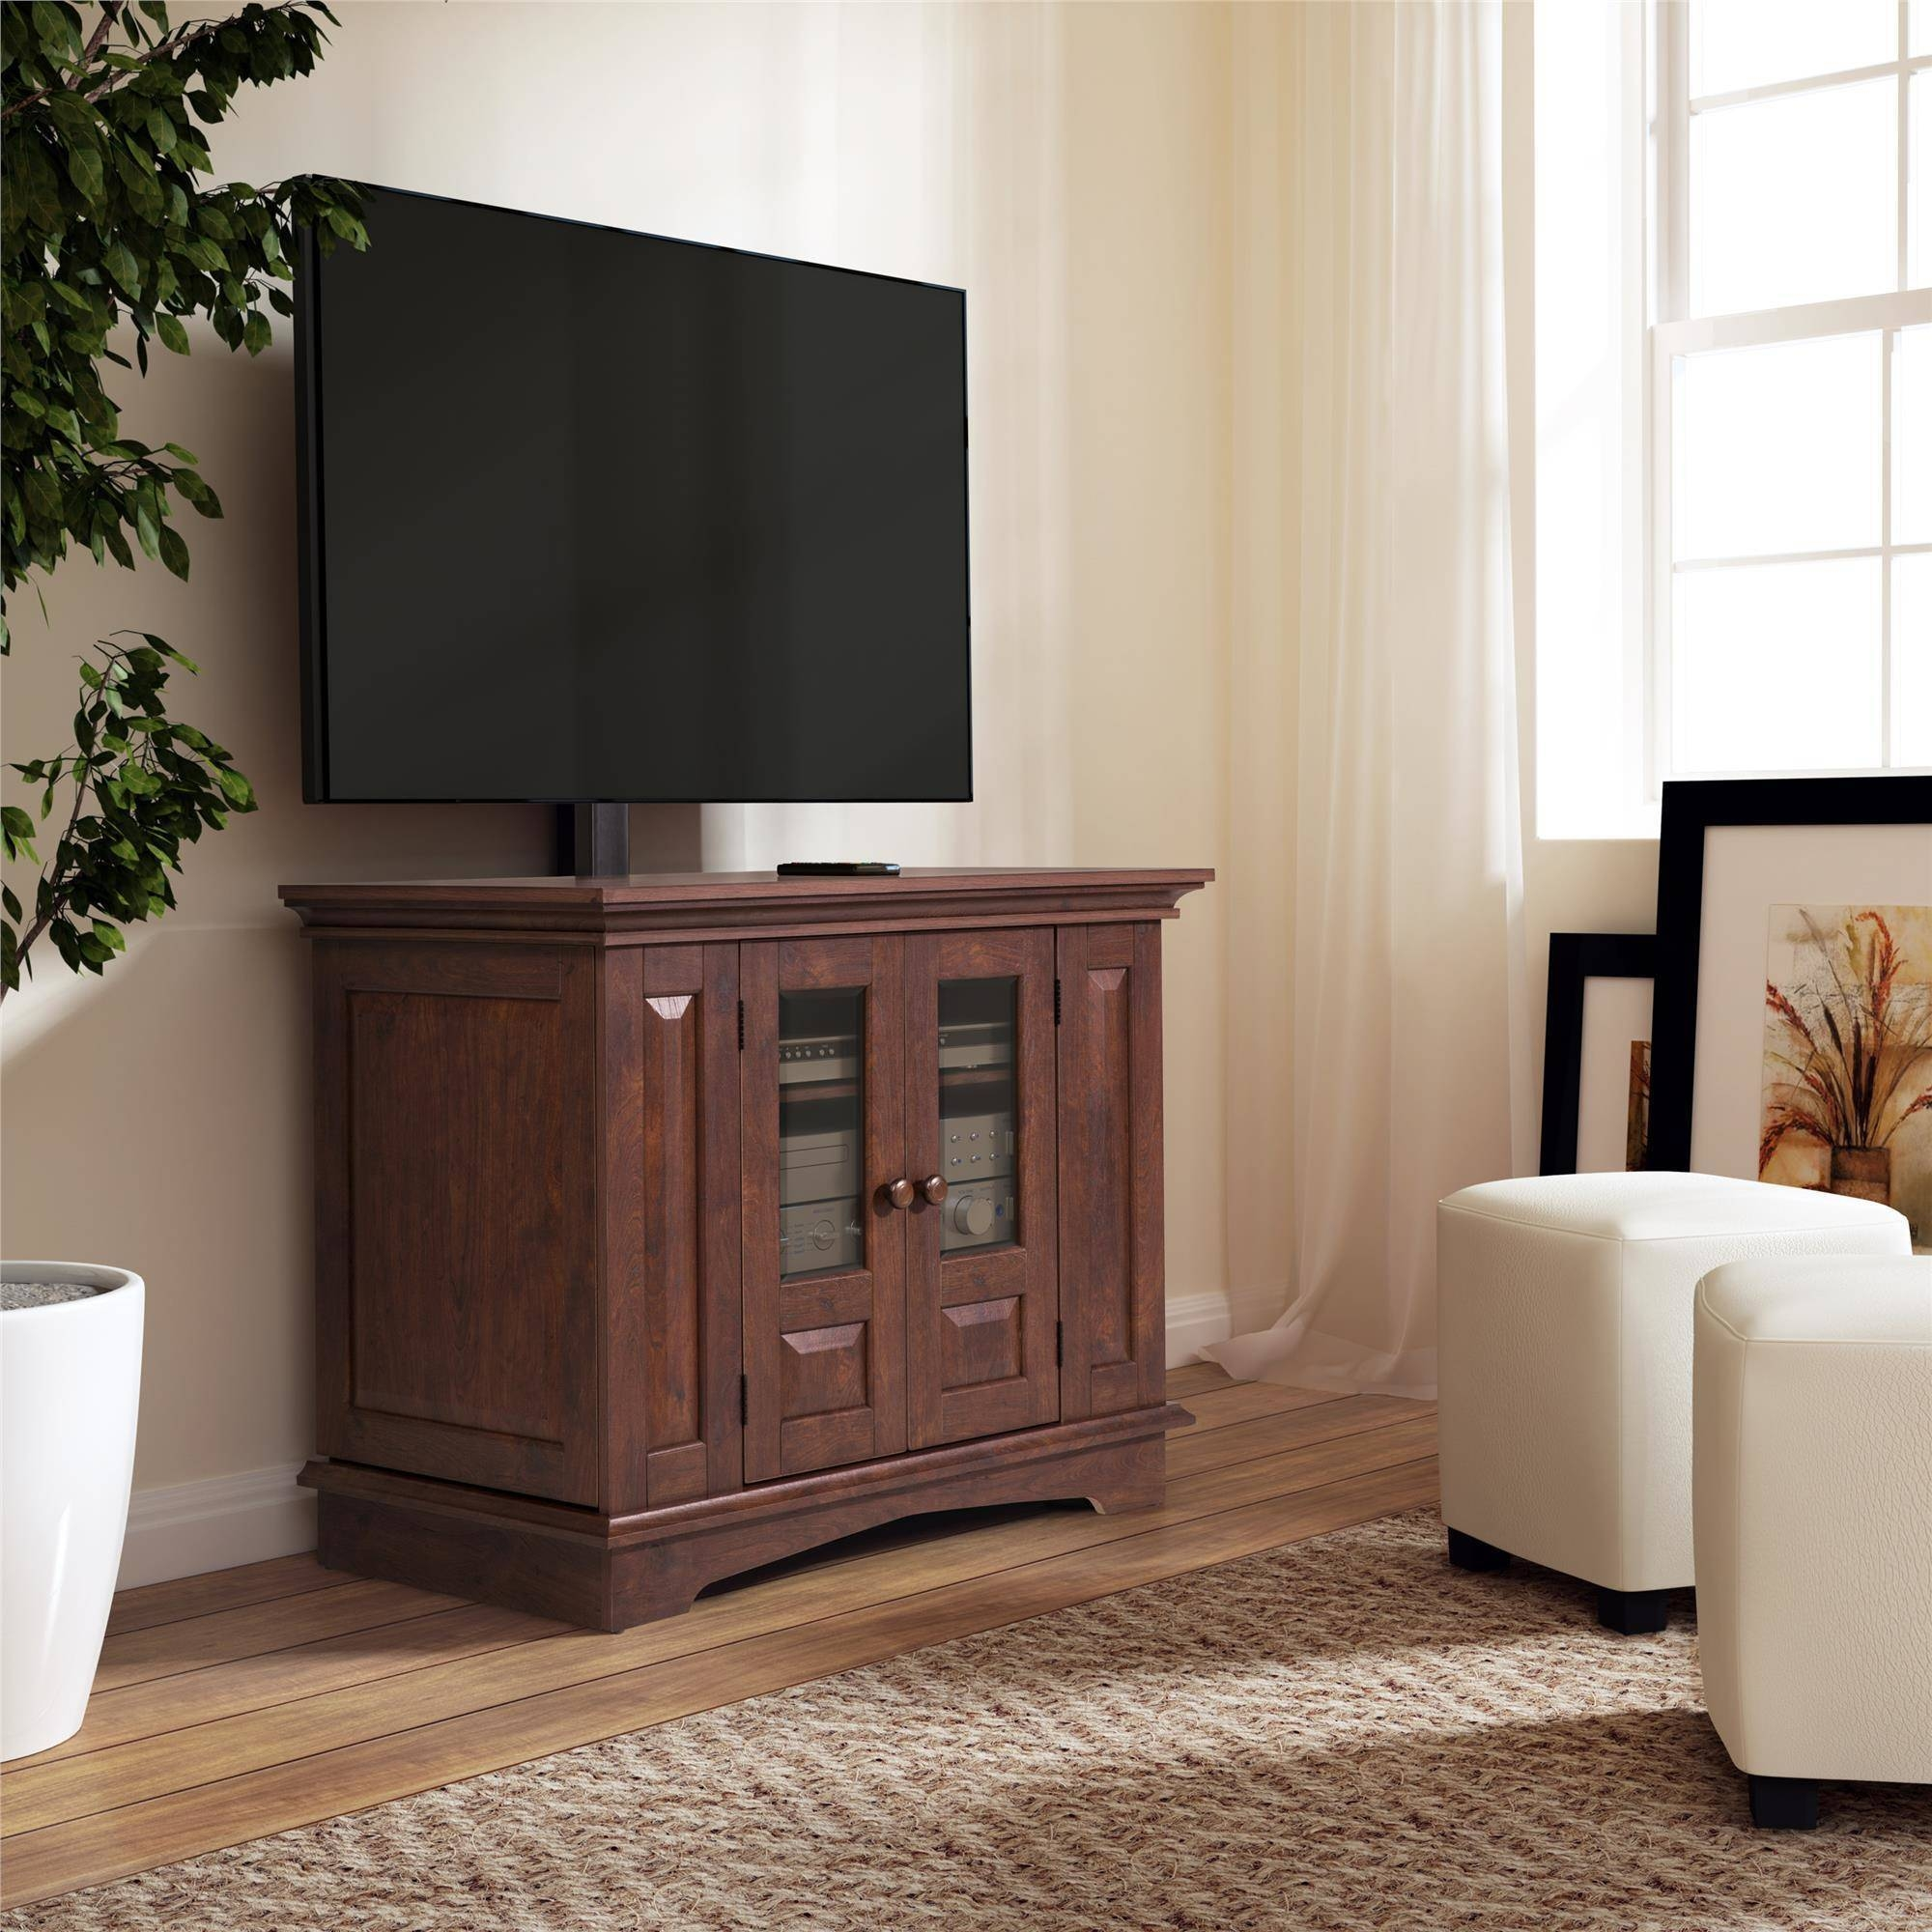 Tv Stand With Mount Tv Stands - Walmart pertaining to Cordoba Tv Stands (Image 11 of 15)